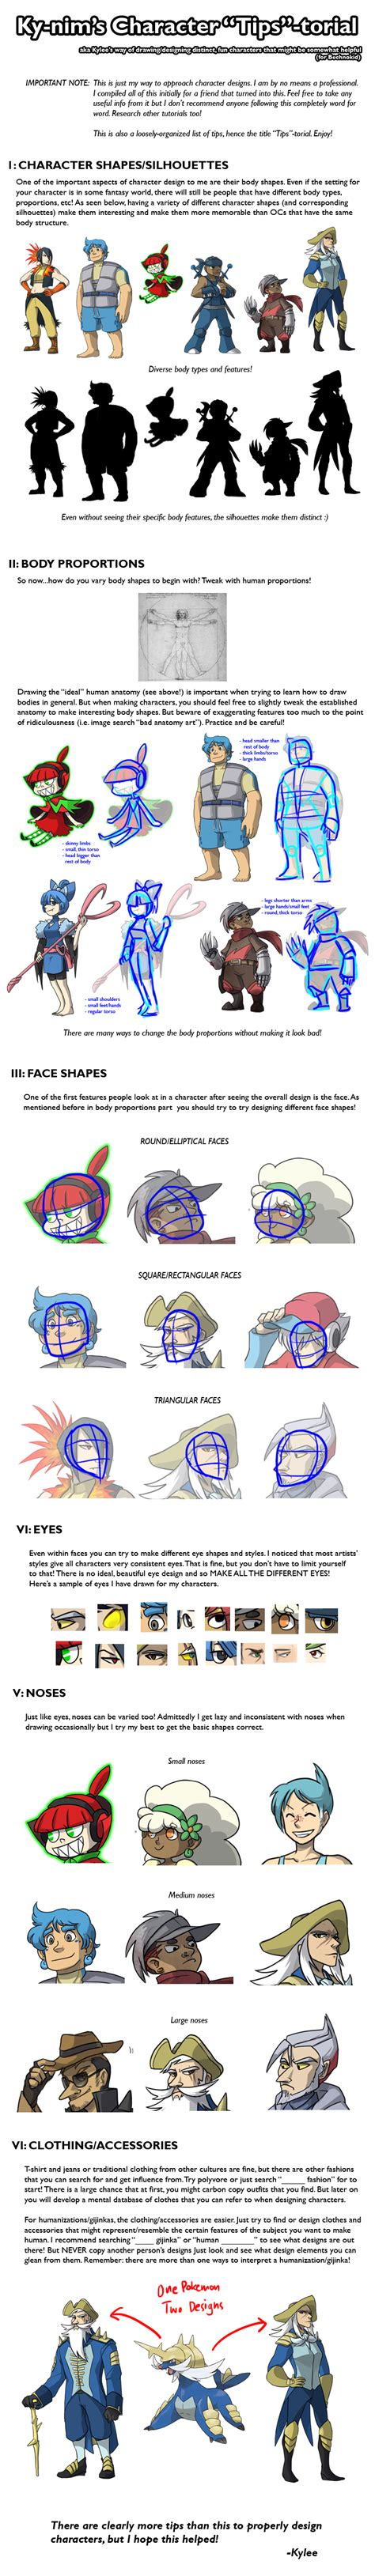 tutorial design character tutorial character design by ky nim on deviantart